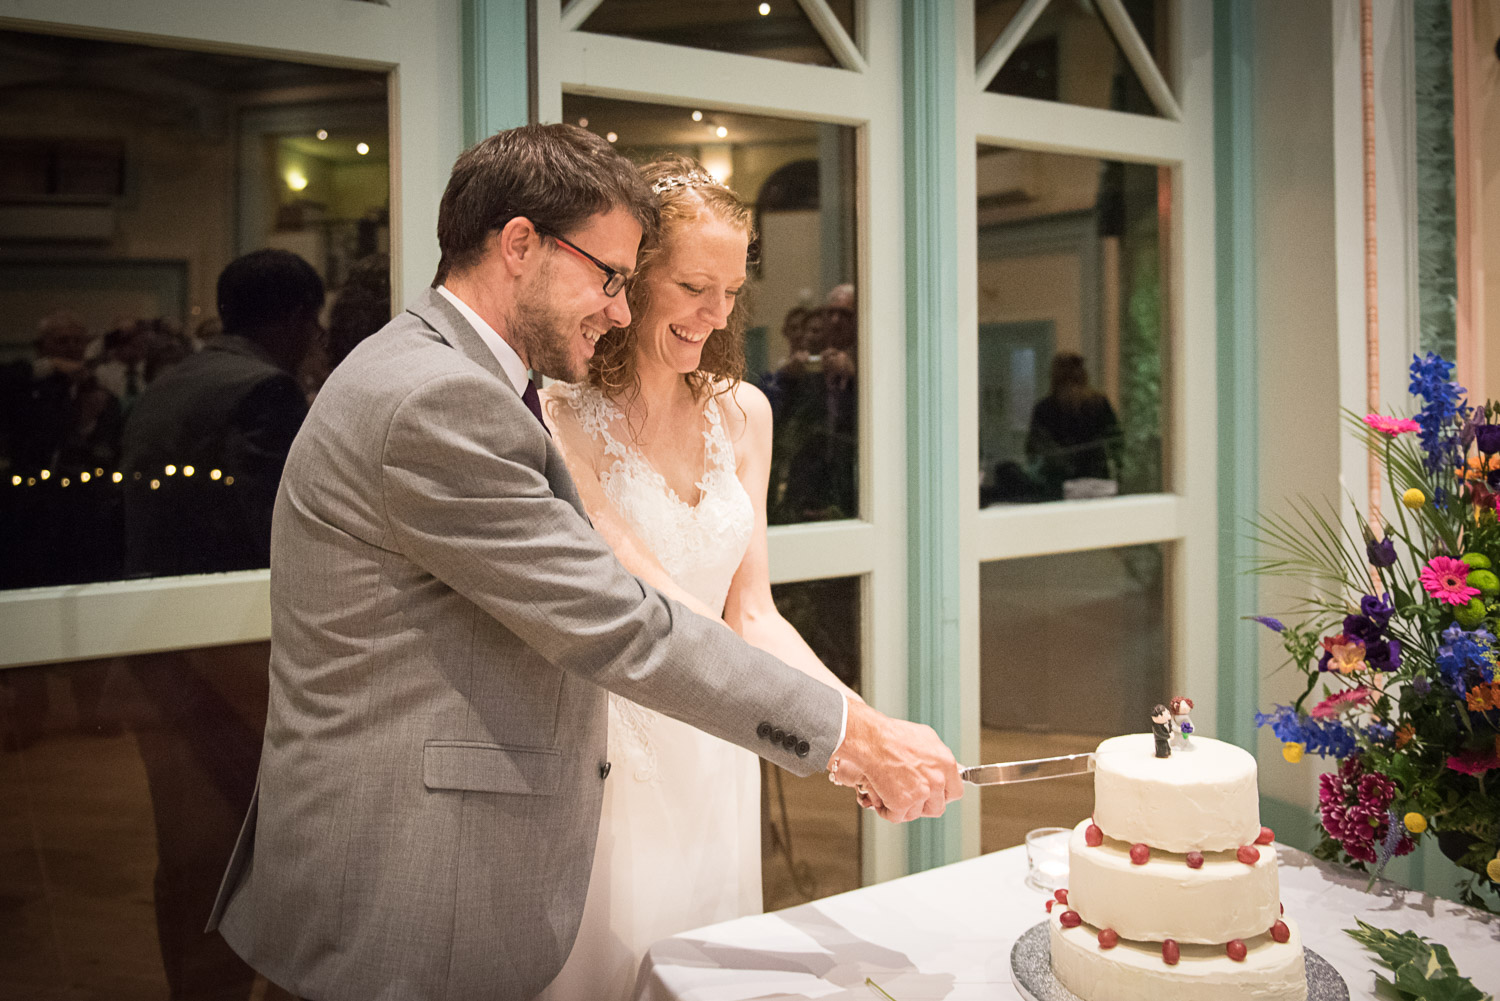 bride and groom cutting their wedding cake at Sun pavilion in Harrogate